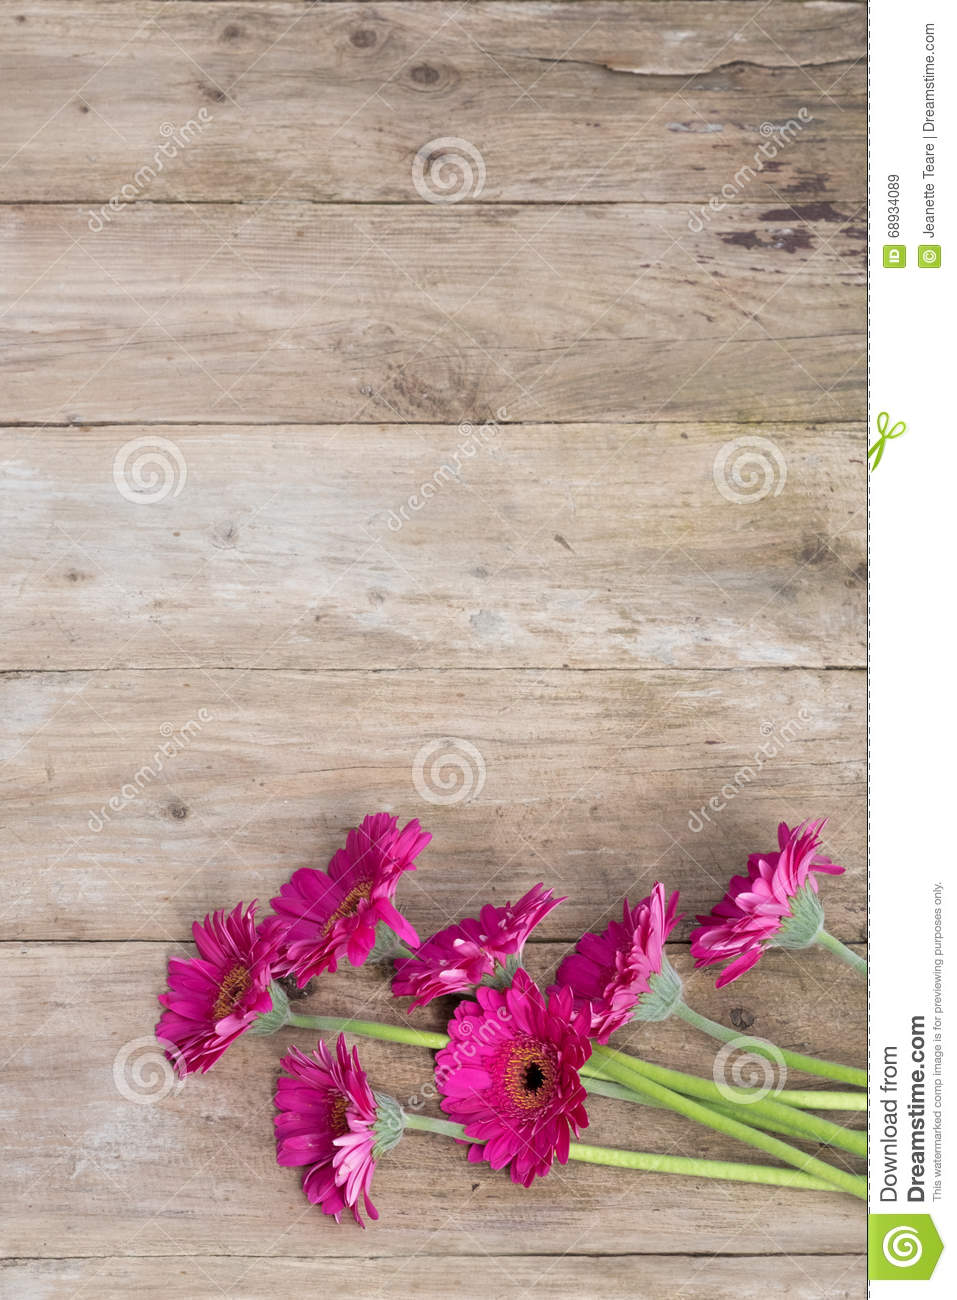 Pretty pink daisy flowers on wood background stock photo